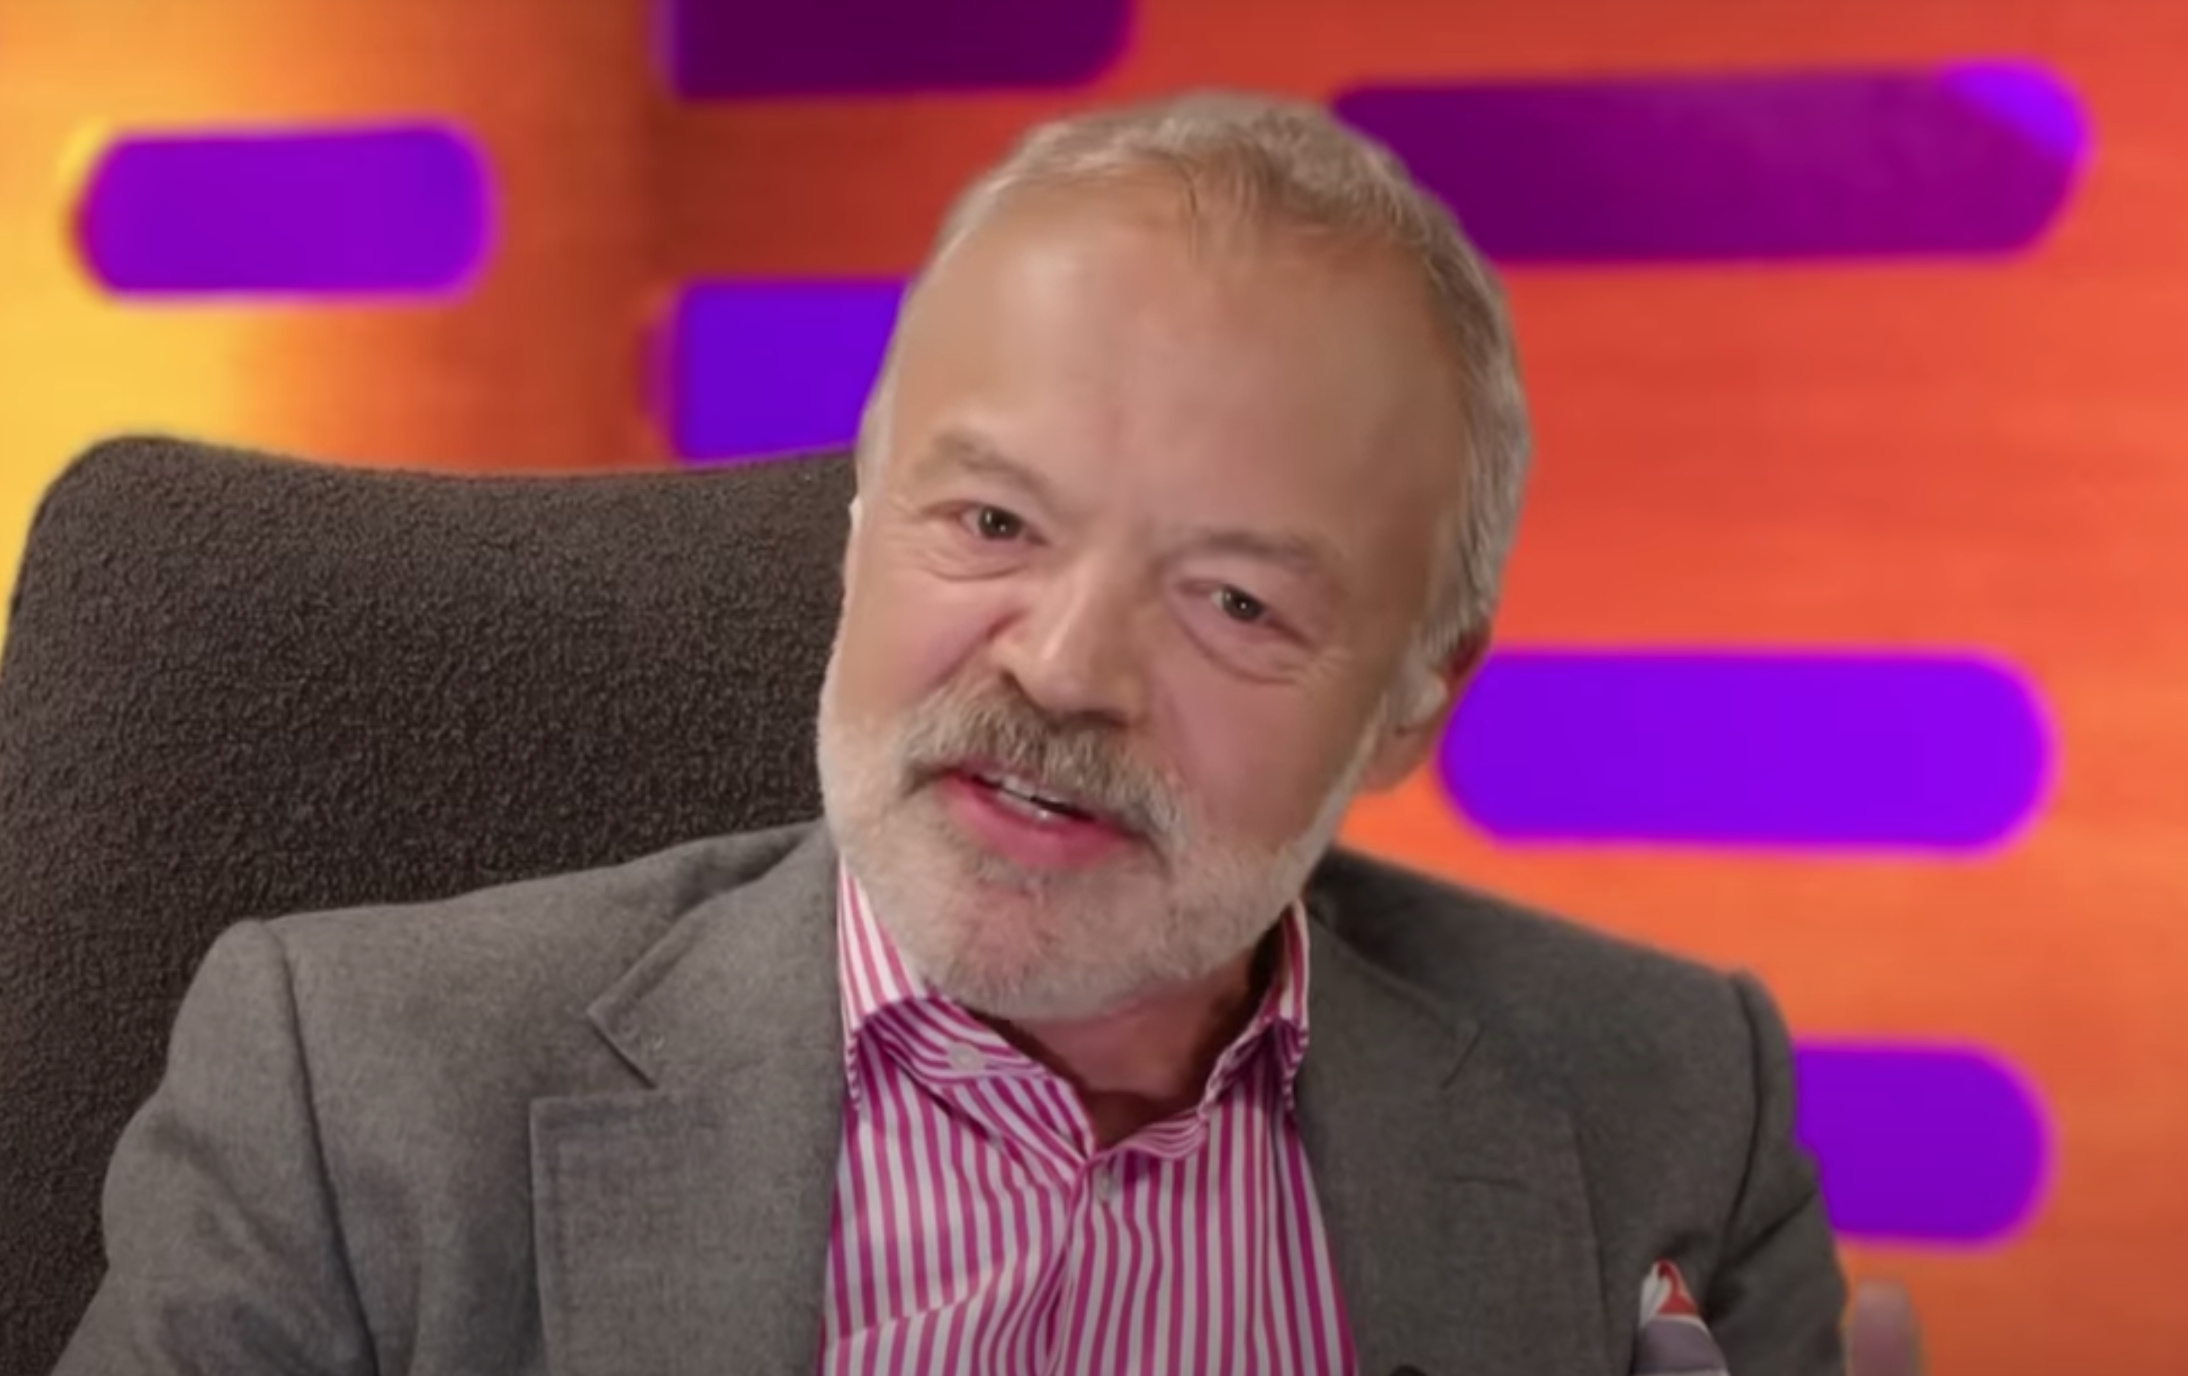 Graham Norton leaves viewers bewildered with 'confusing' lockdown message